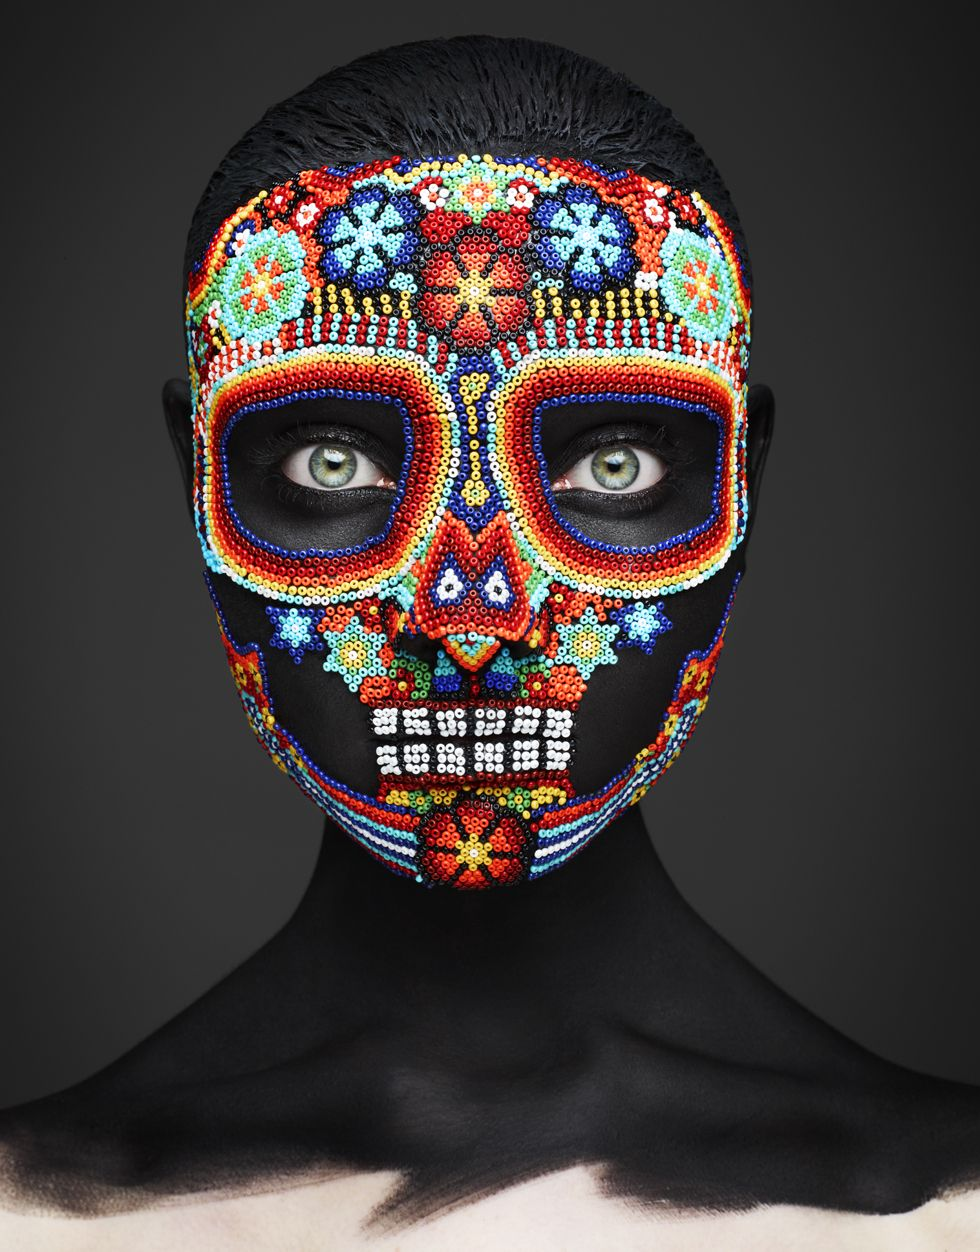 Epitaph Editorial By Rankin Andrew Gallimore Pattern Art Face